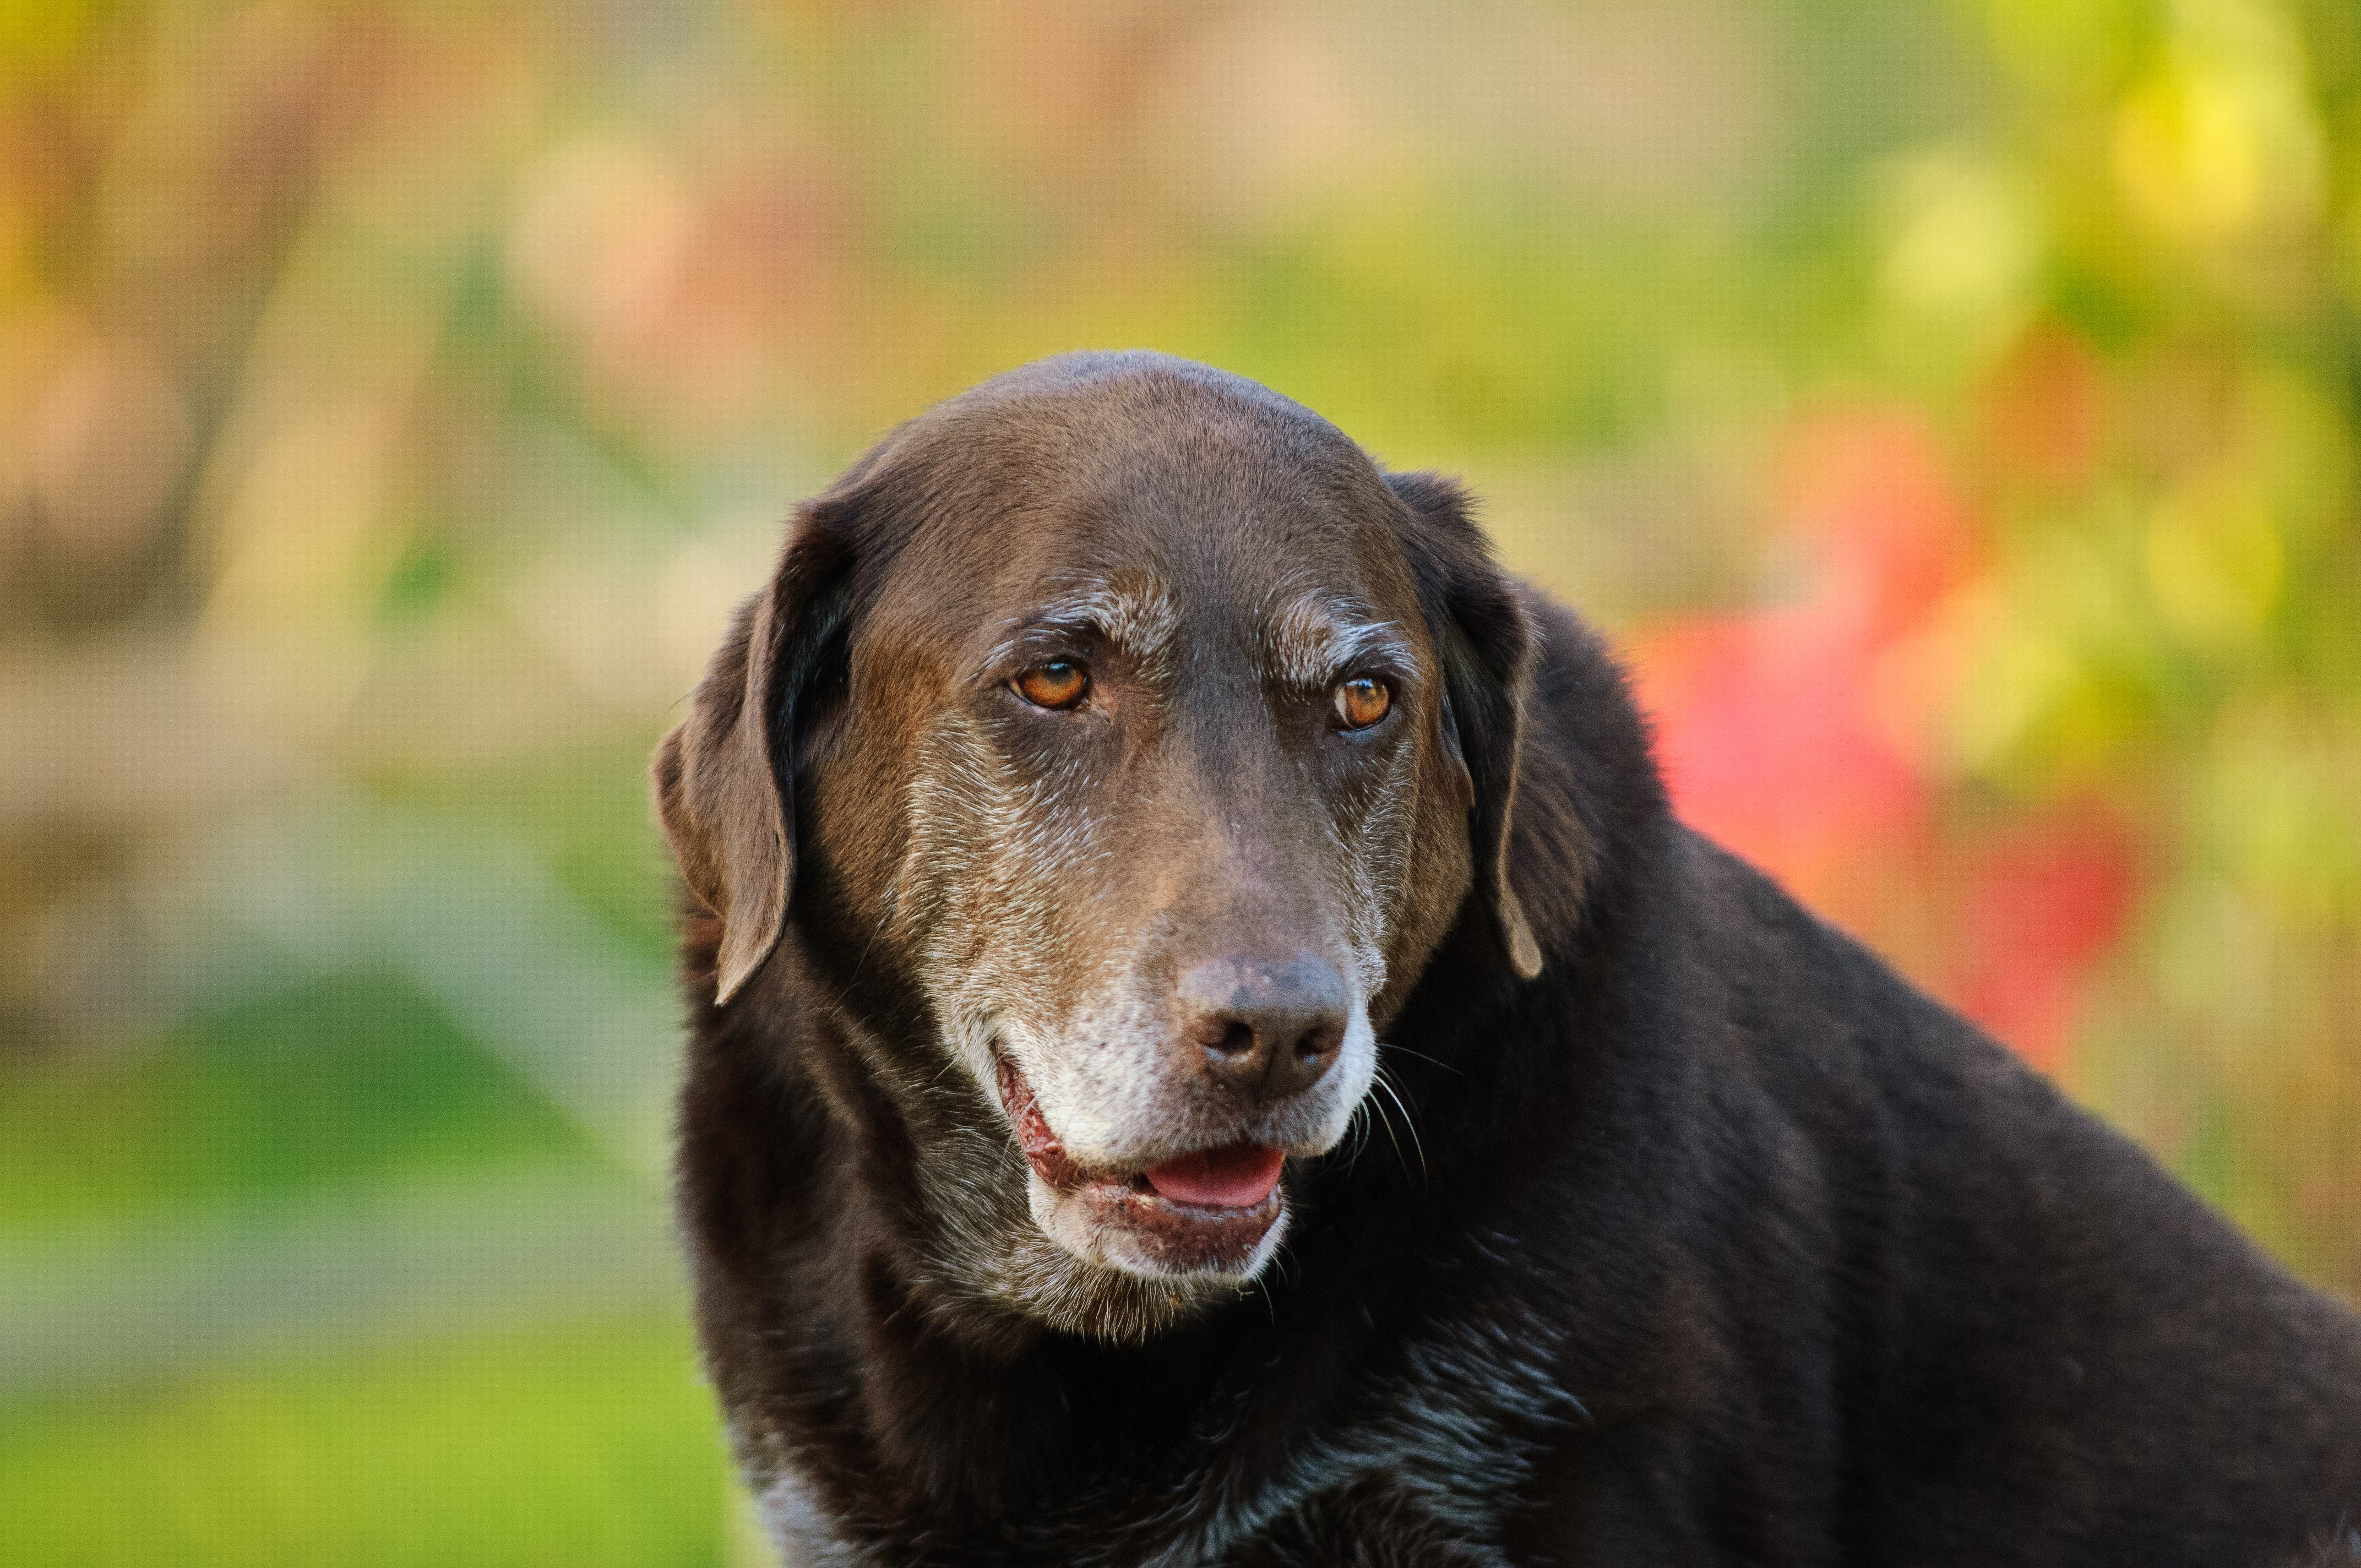 A black dog sits outdoors | Photo: Shutterstock